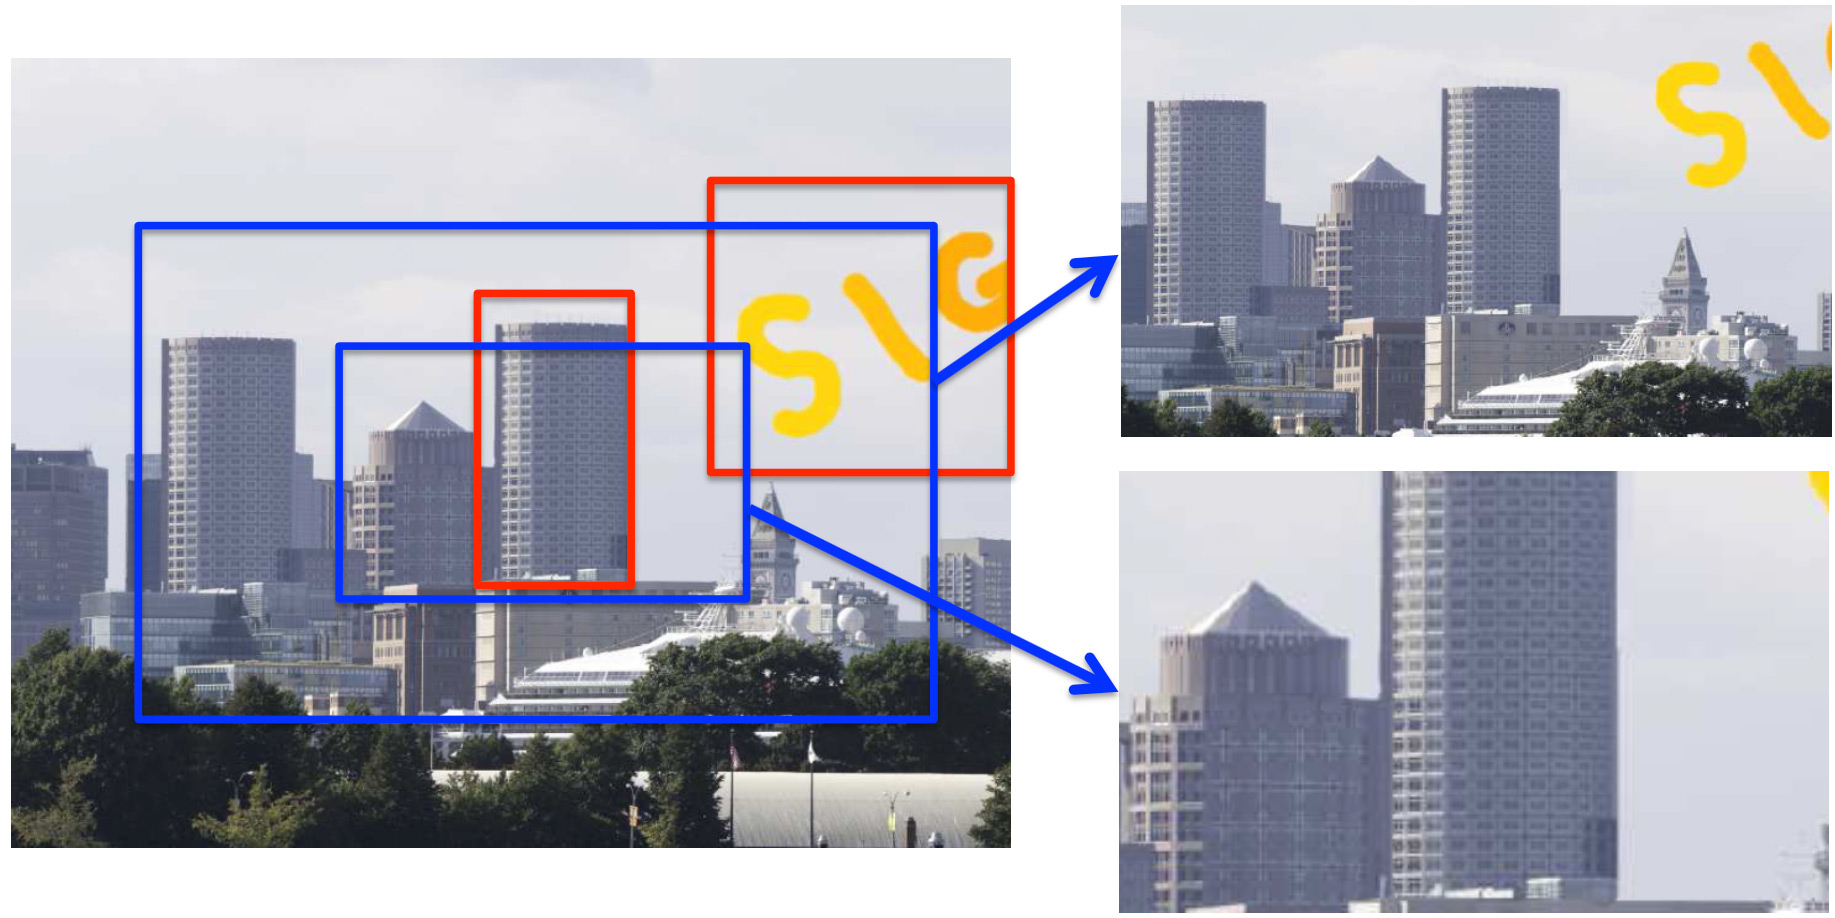 Interactive large-scale image editing using operator reduction